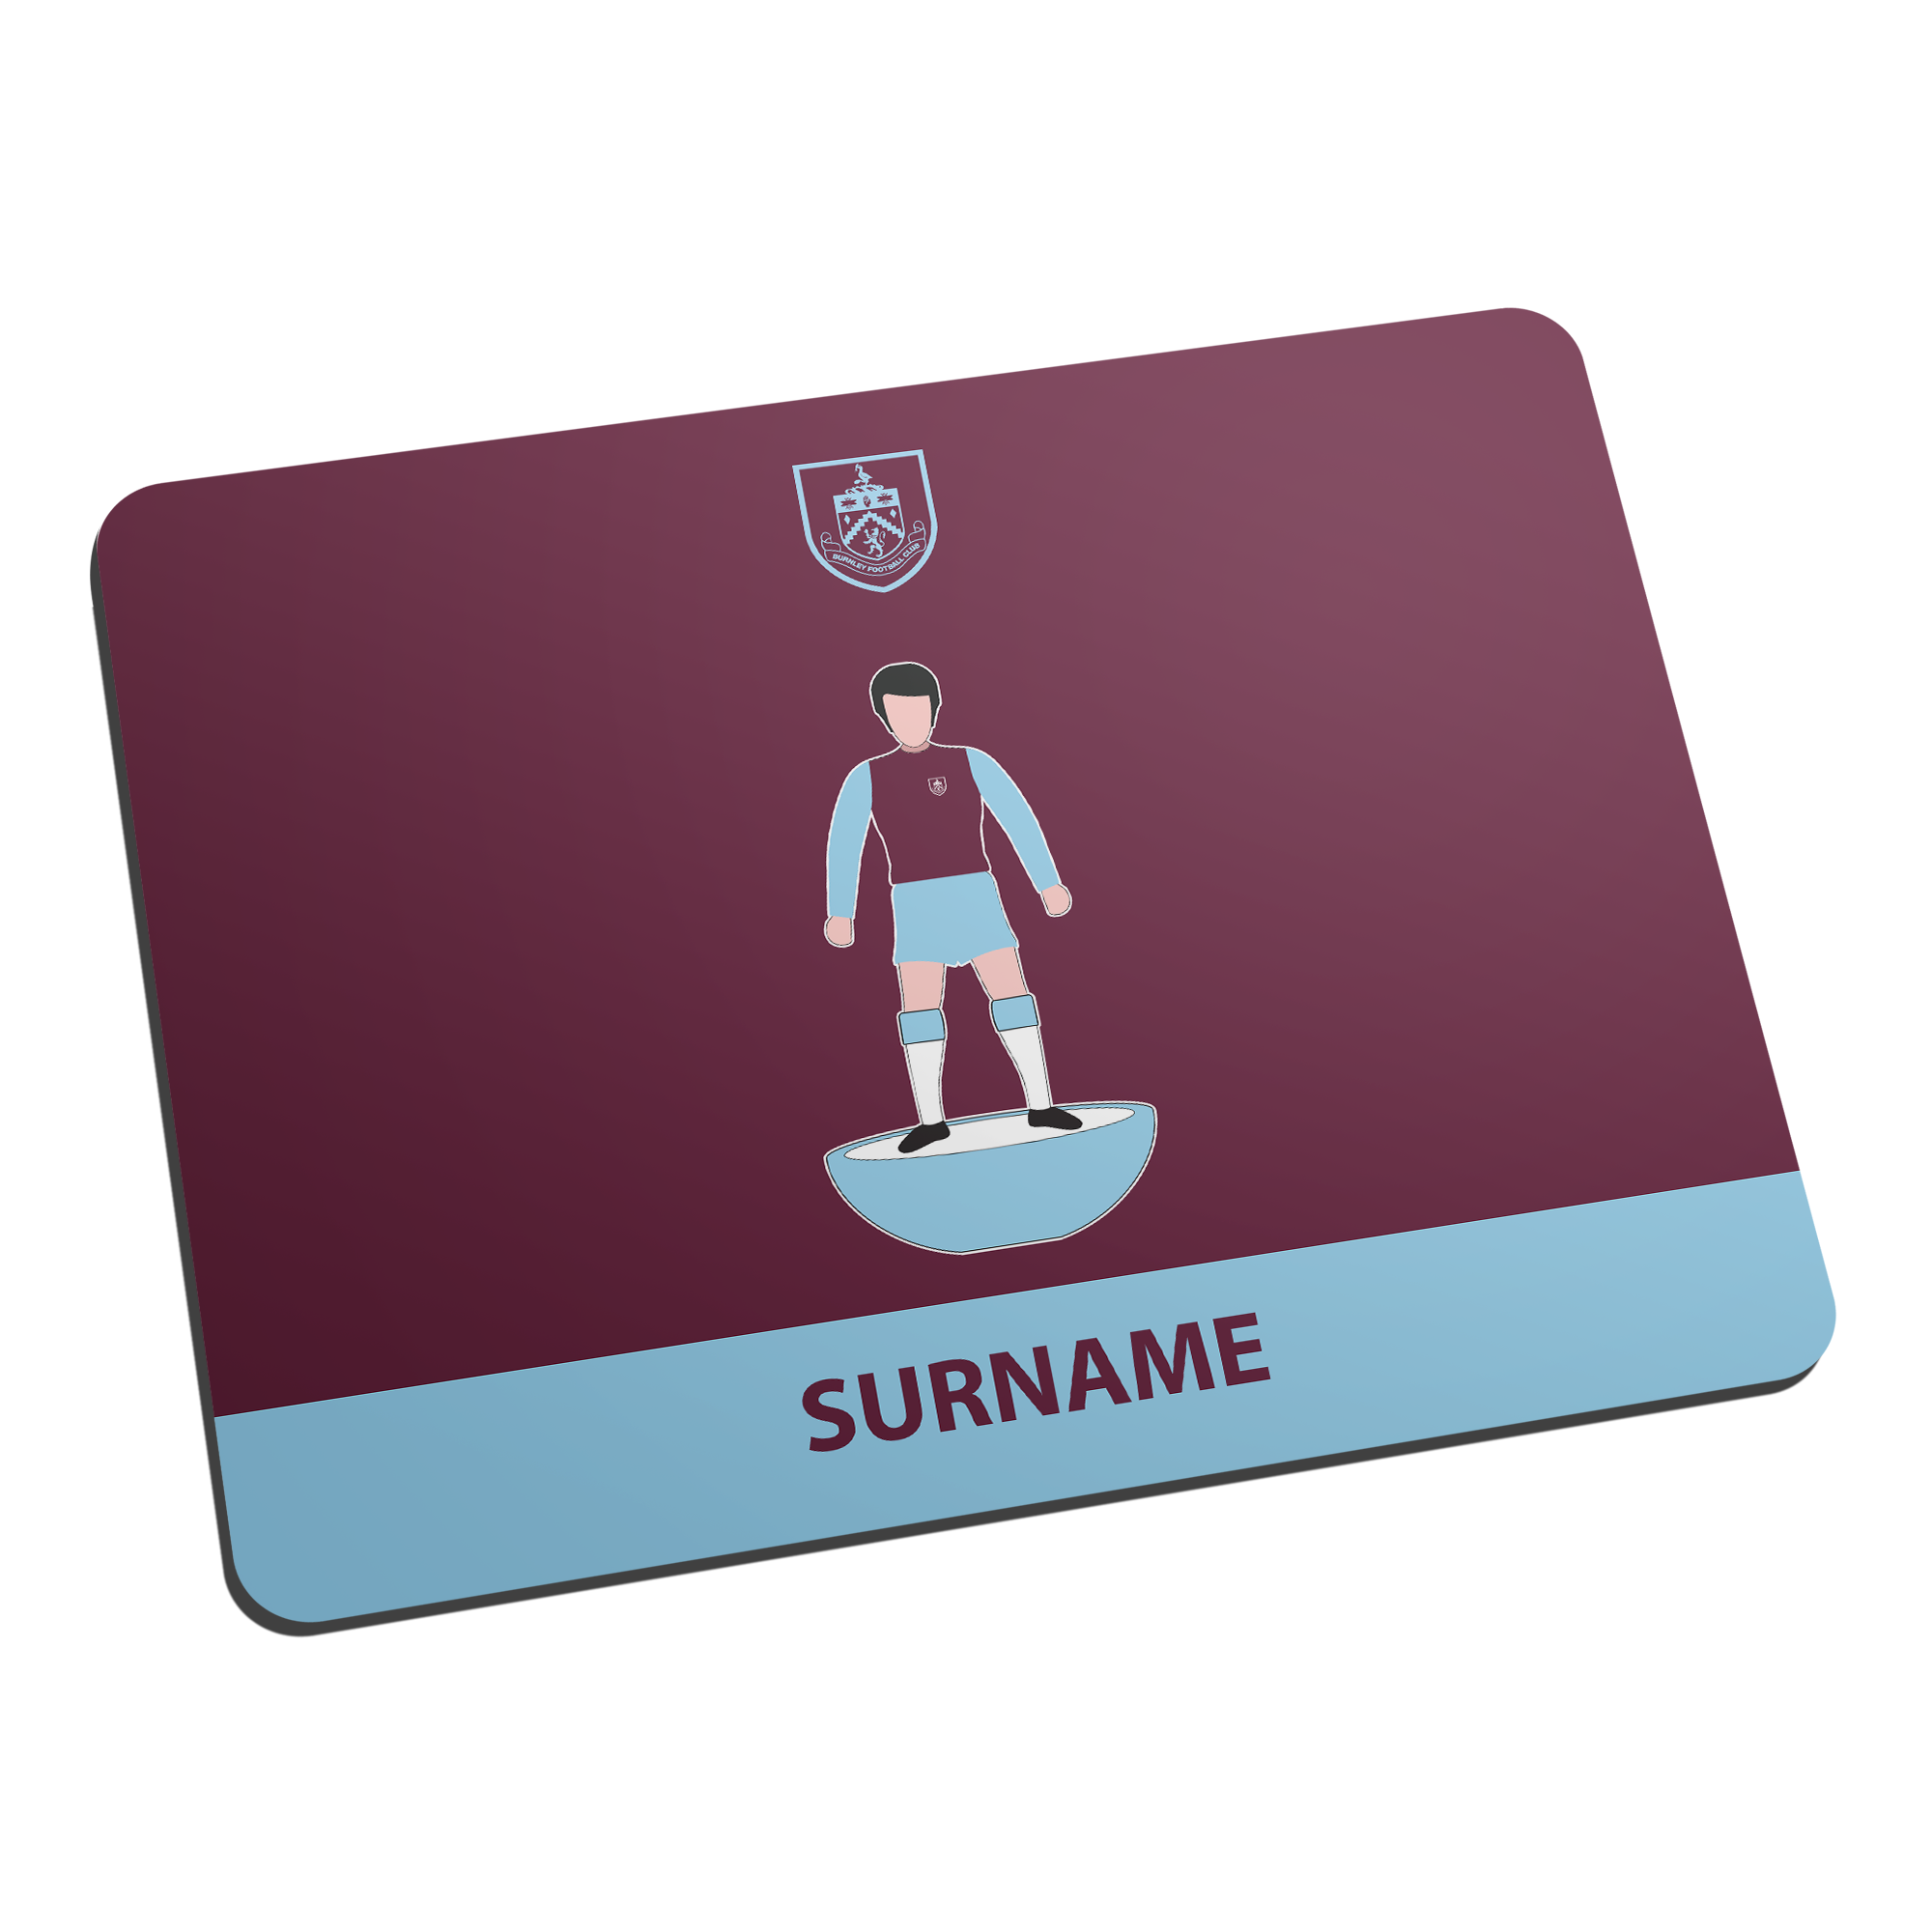 Burnley FC Player Figure Mouse Mat